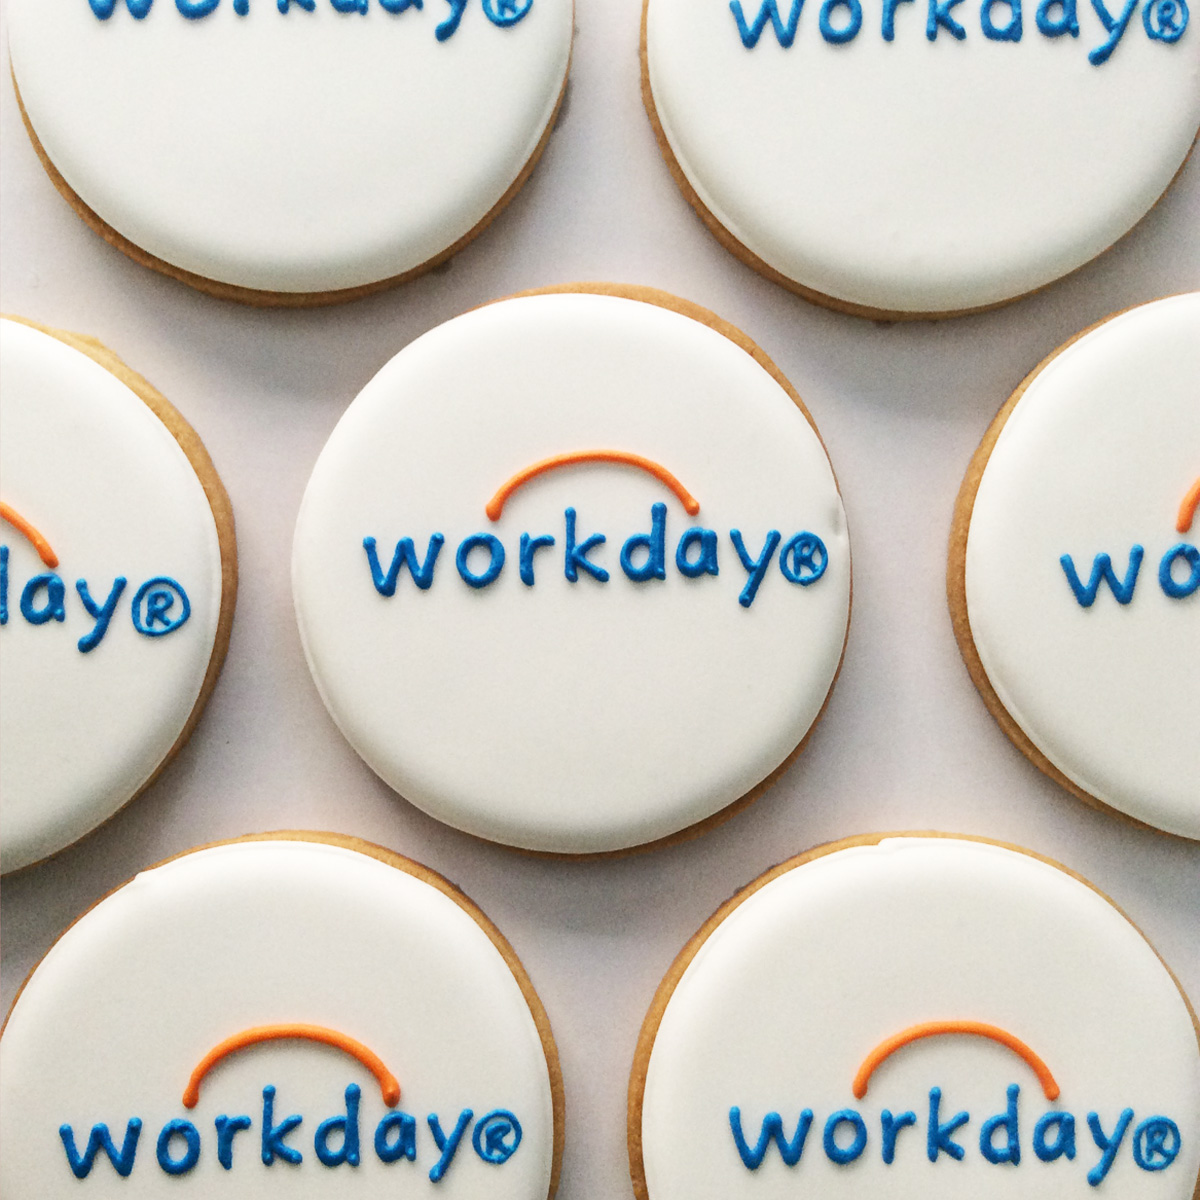 「workday」ロゴクッキー